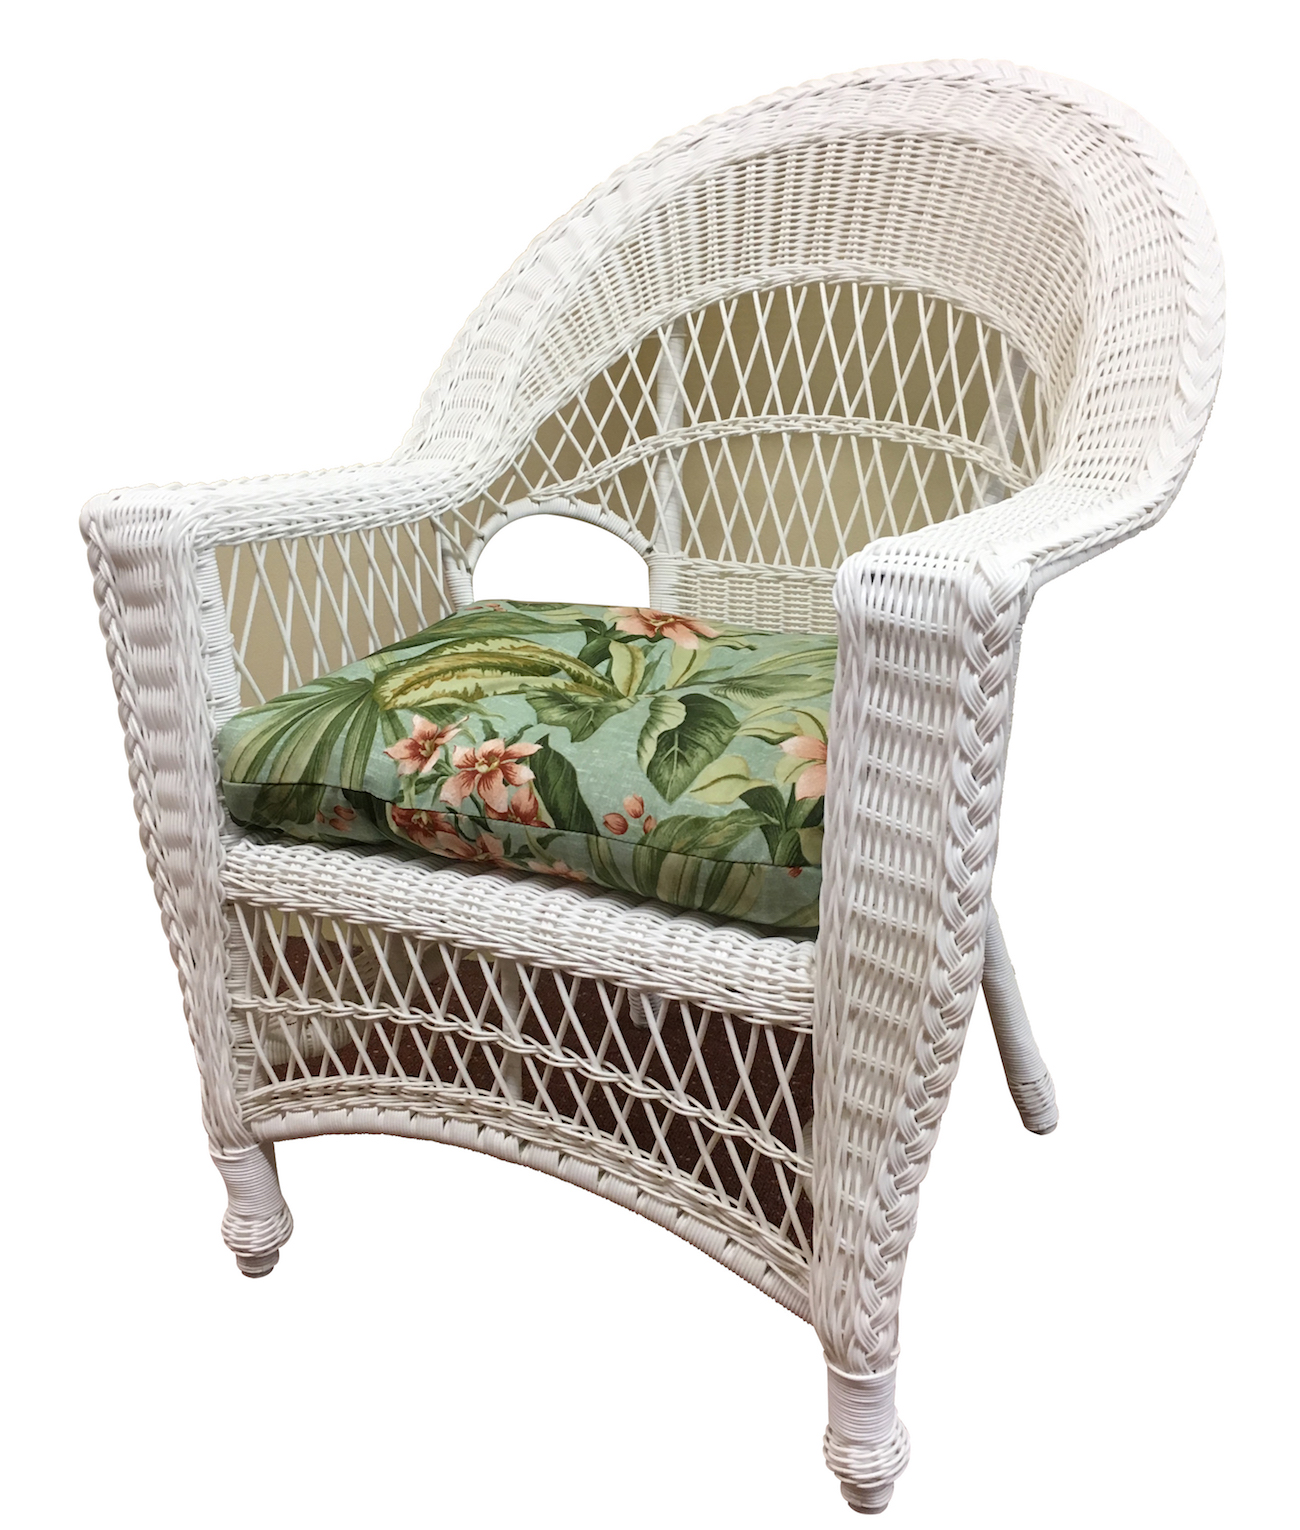 Awesome outdoor wicker chair - cape cod wxtyeff